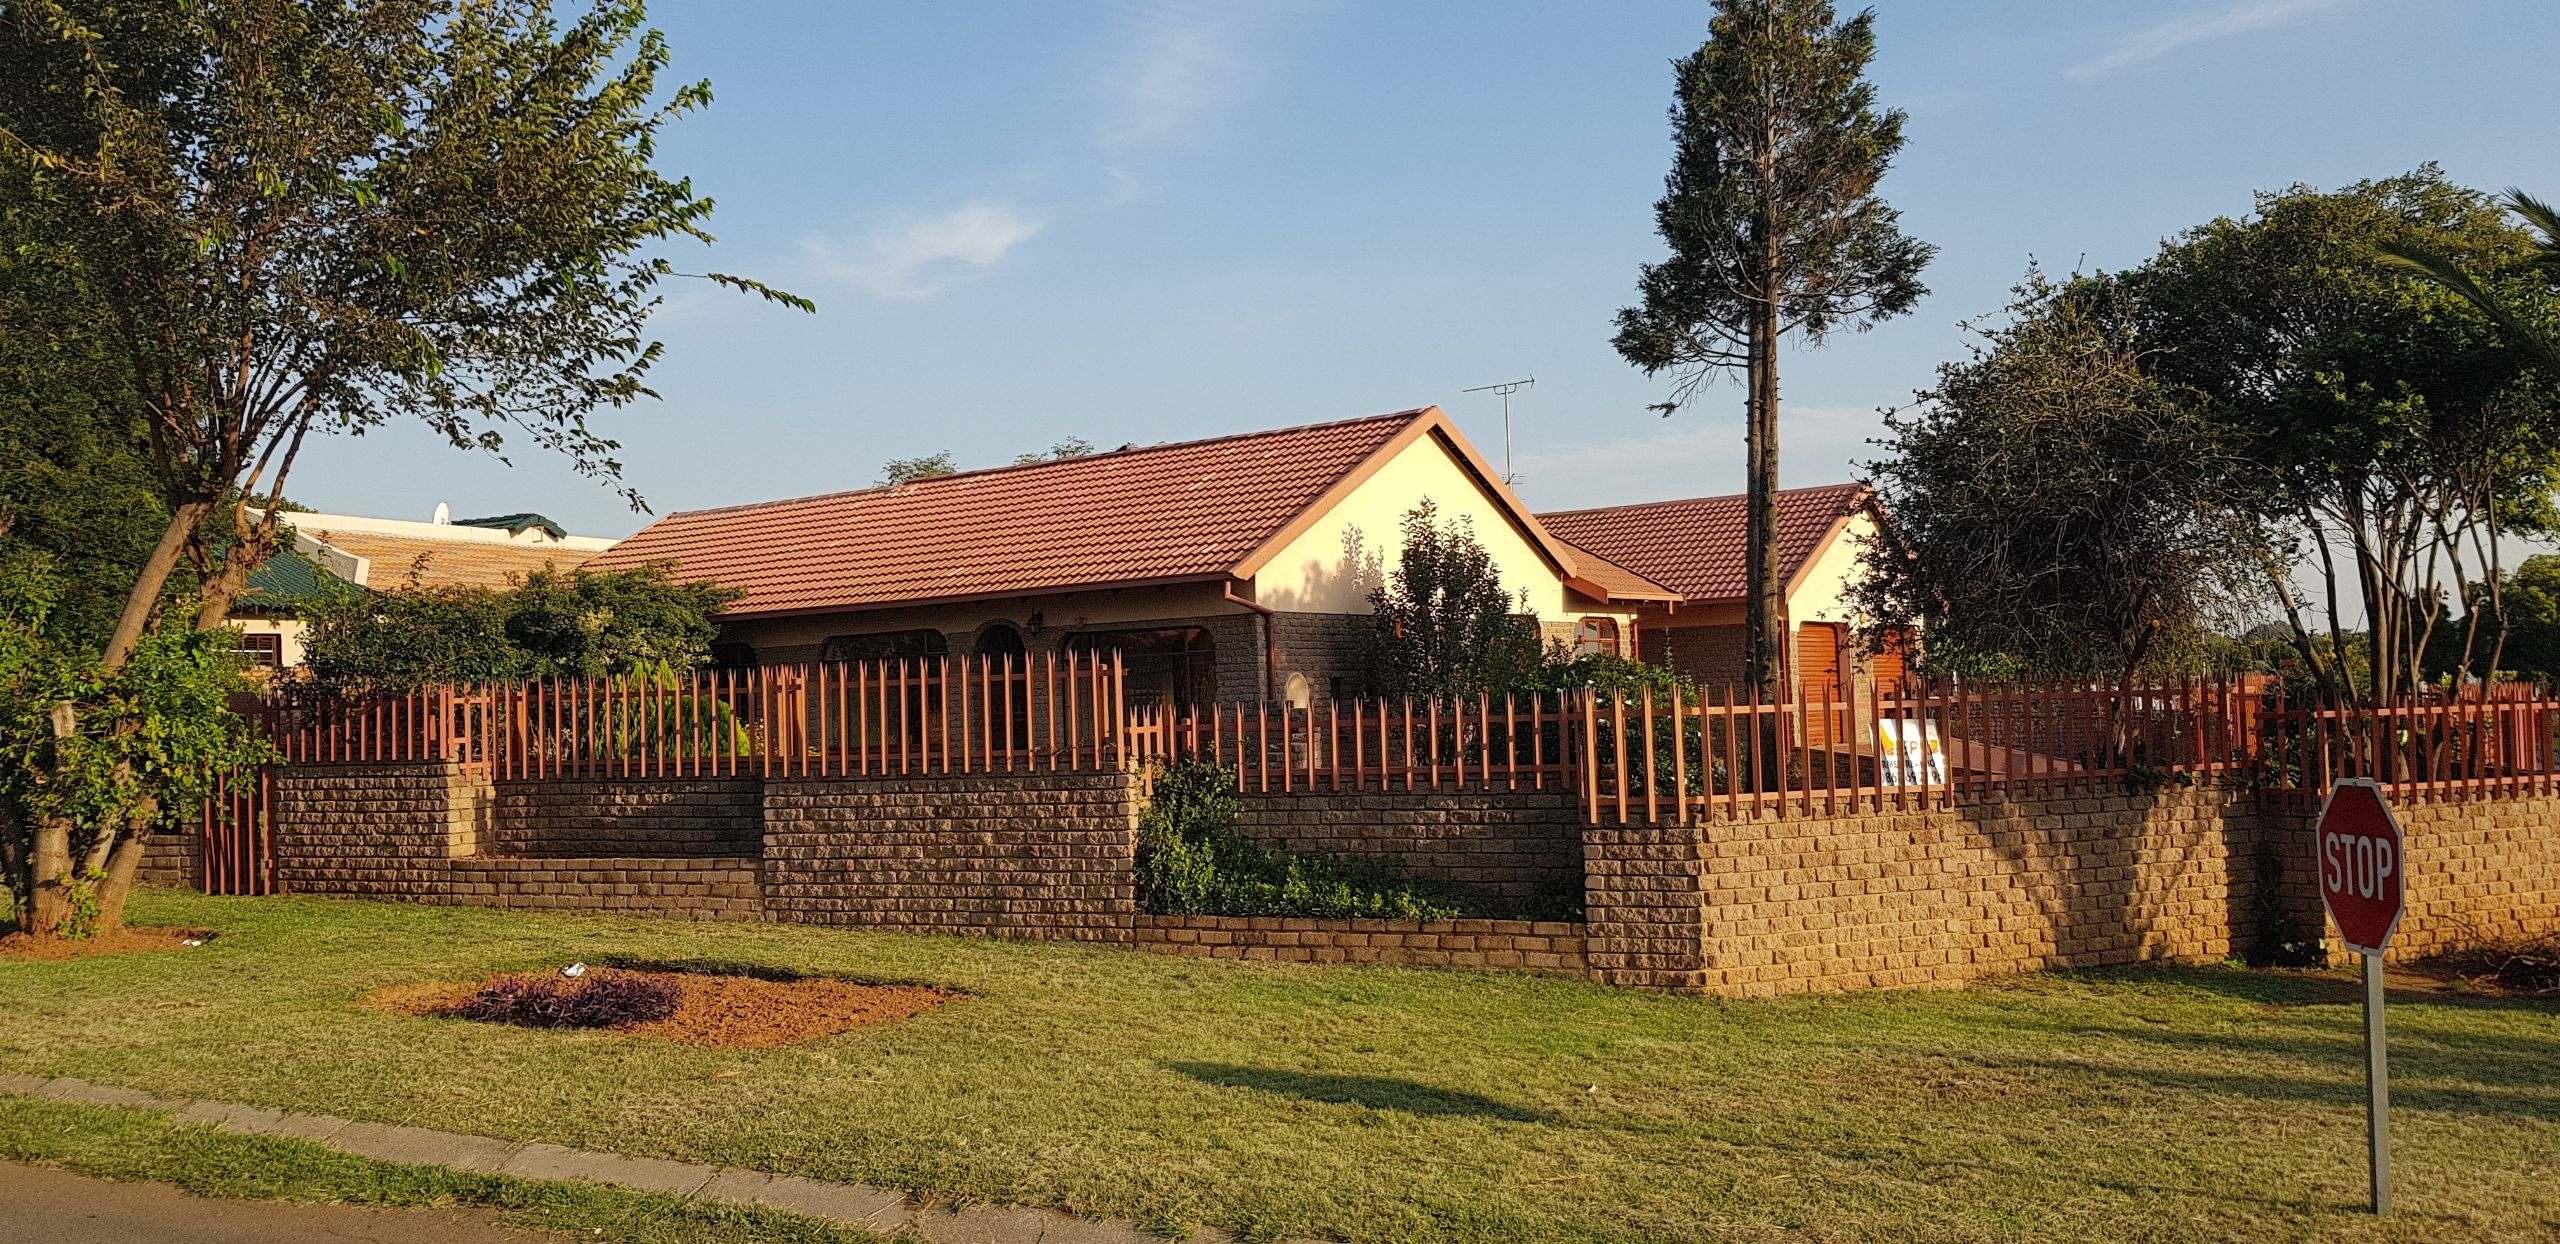 4 BedroomHouse For Sale In Greenhills